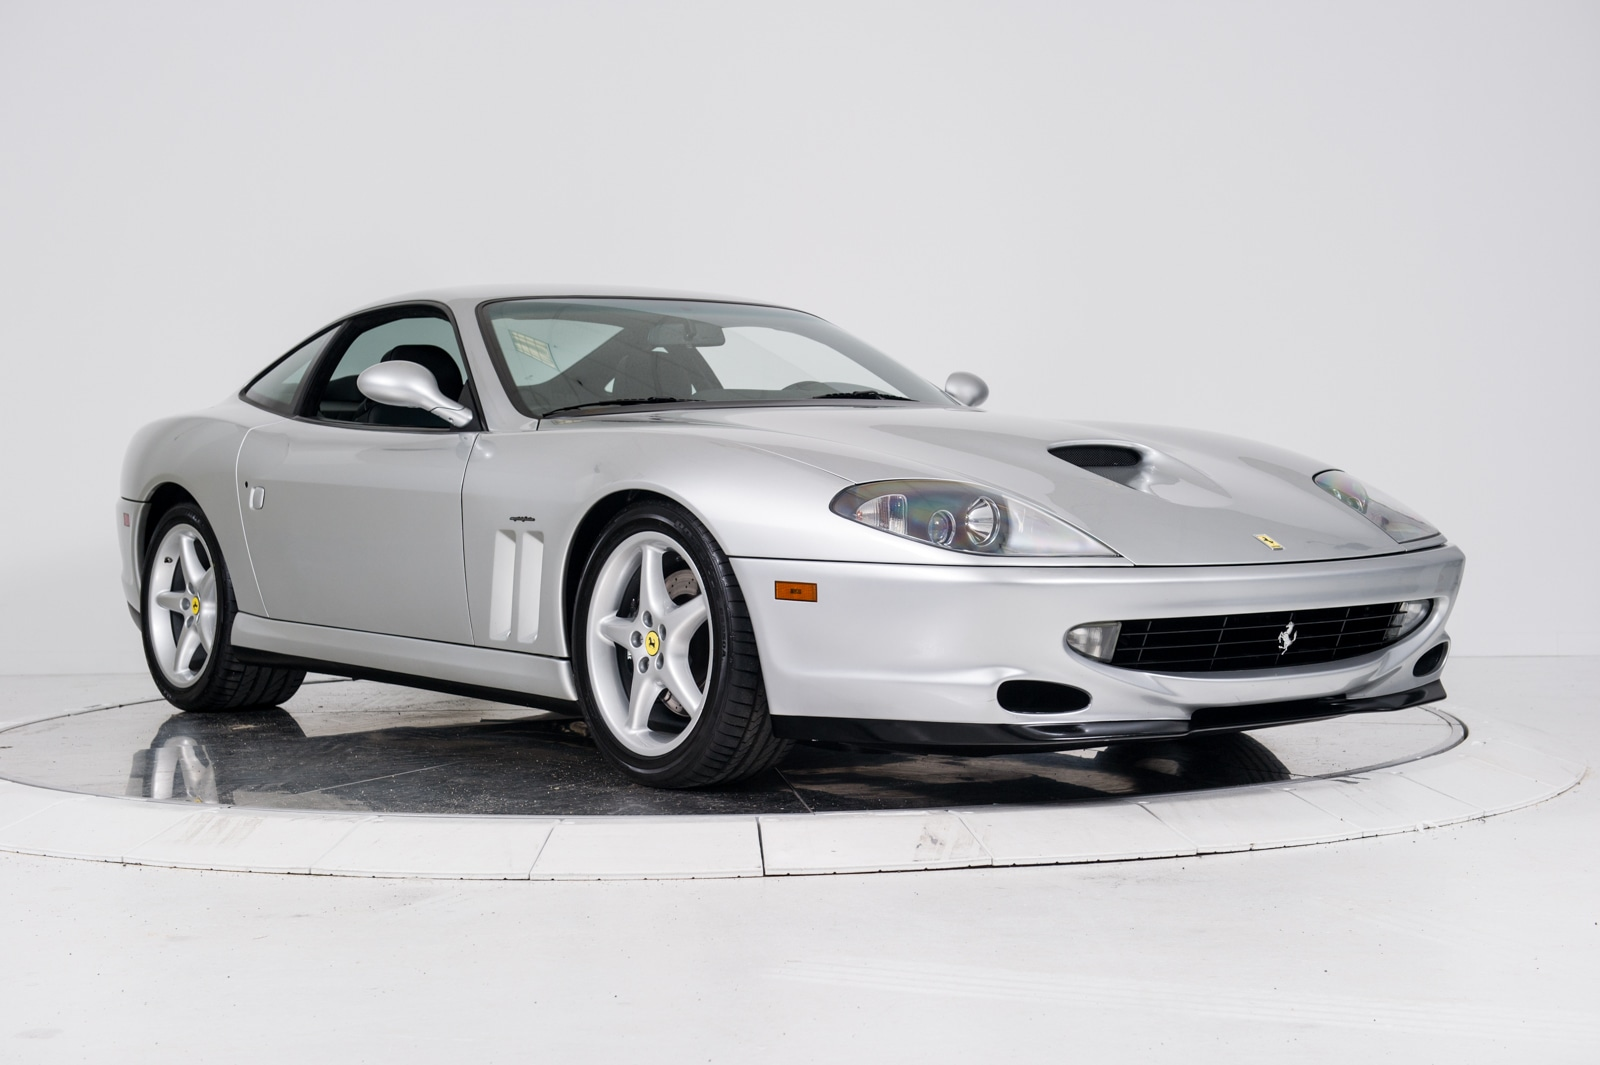 used 2000 ferrari 550 maranello for sale plainview near long island ny vin zffzs49a7y0121545. Black Bedroom Furniture Sets. Home Design Ideas